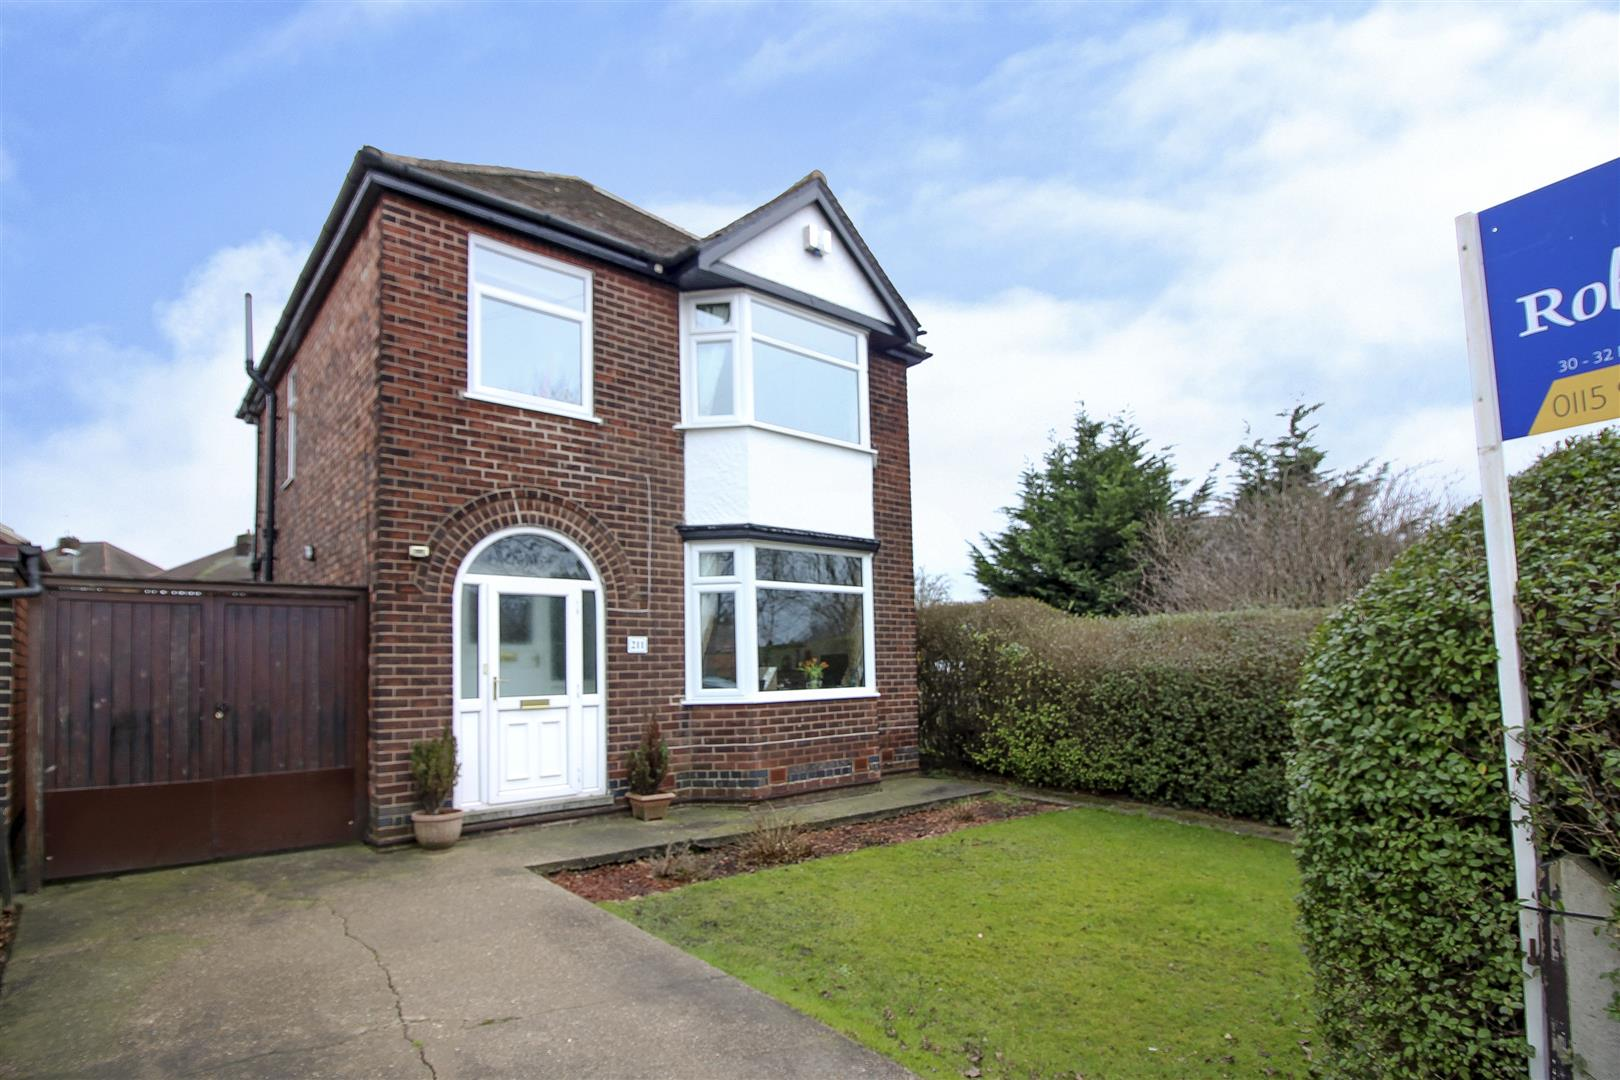 3 Bedrooms House for sale in Pasture Road, Stapleford, Nottingham